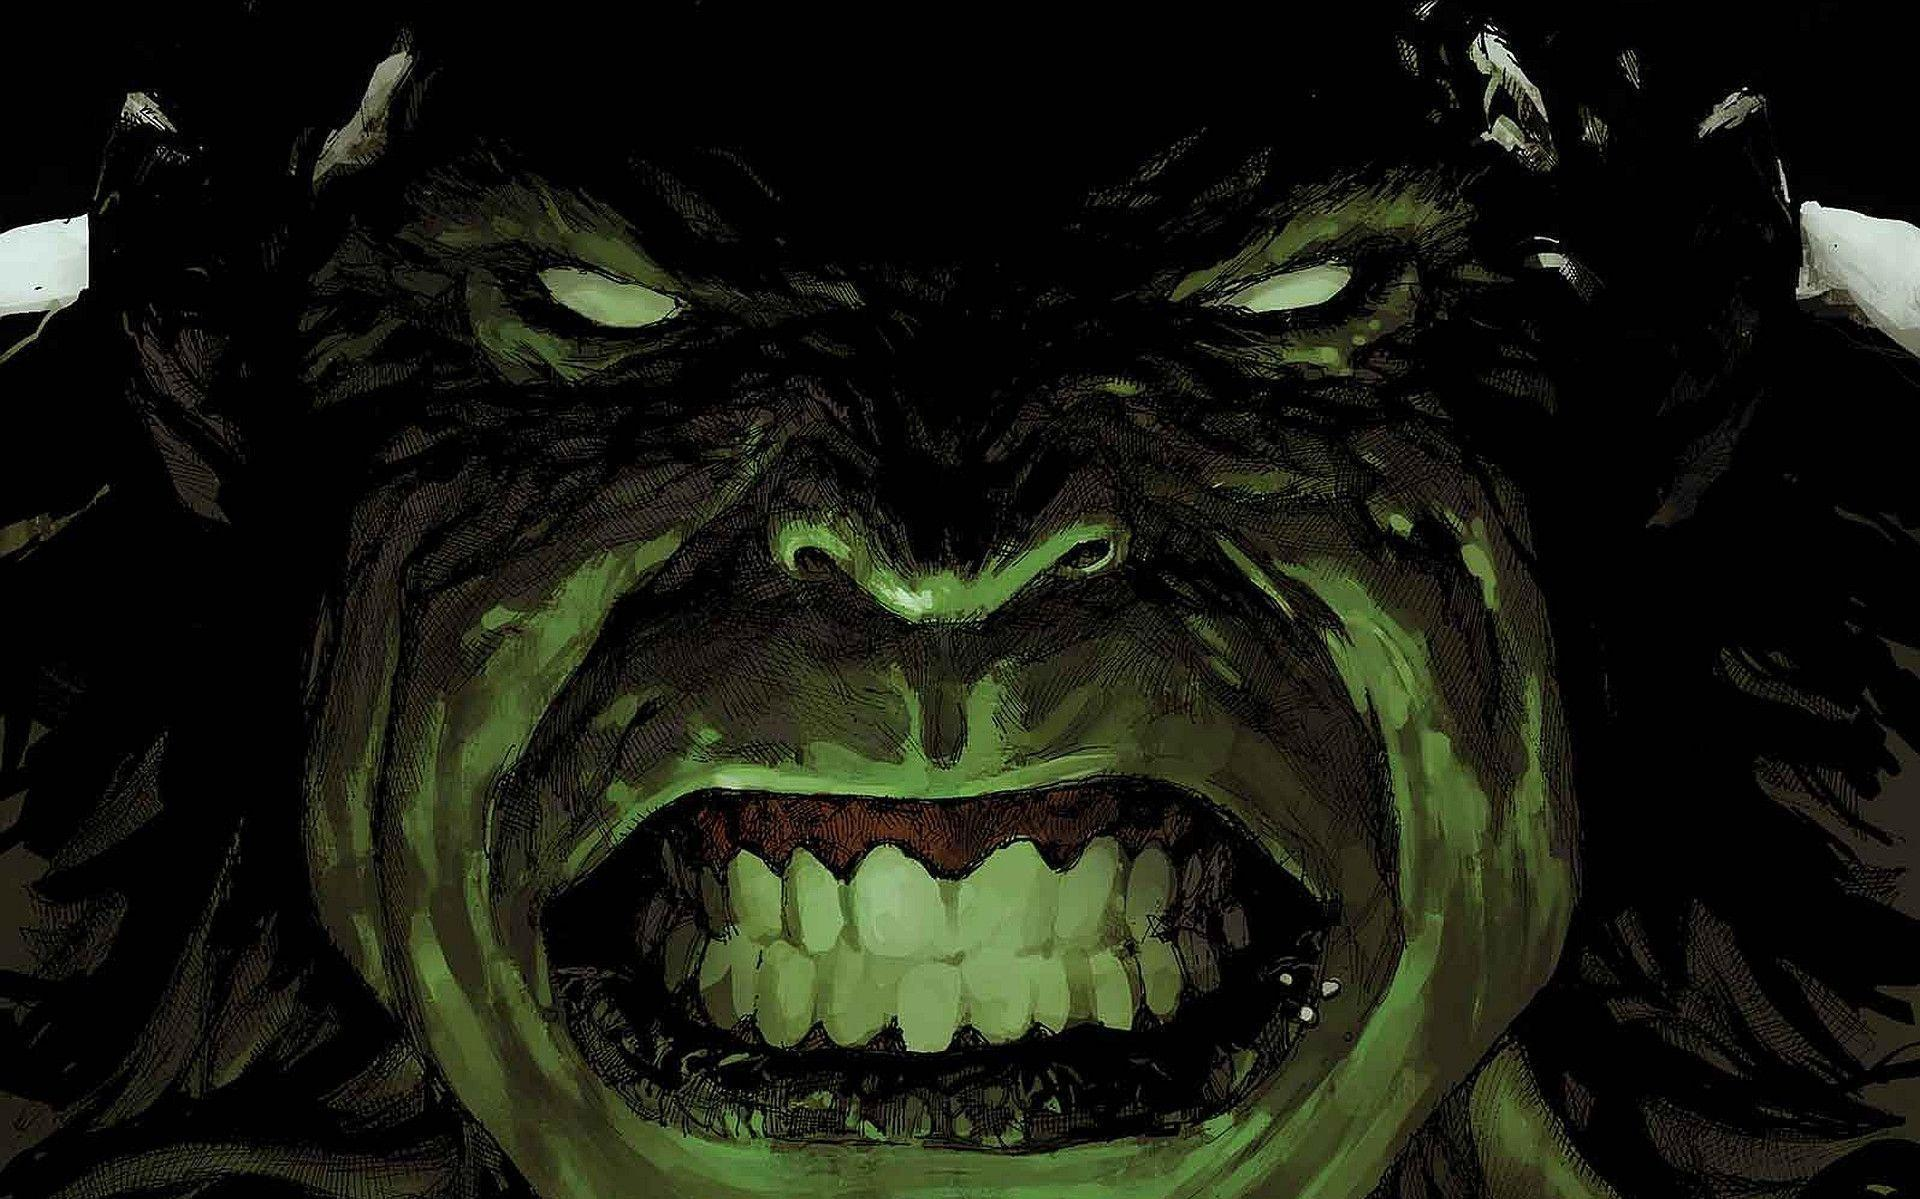 hulk wallpapers hd - wallpaper cave